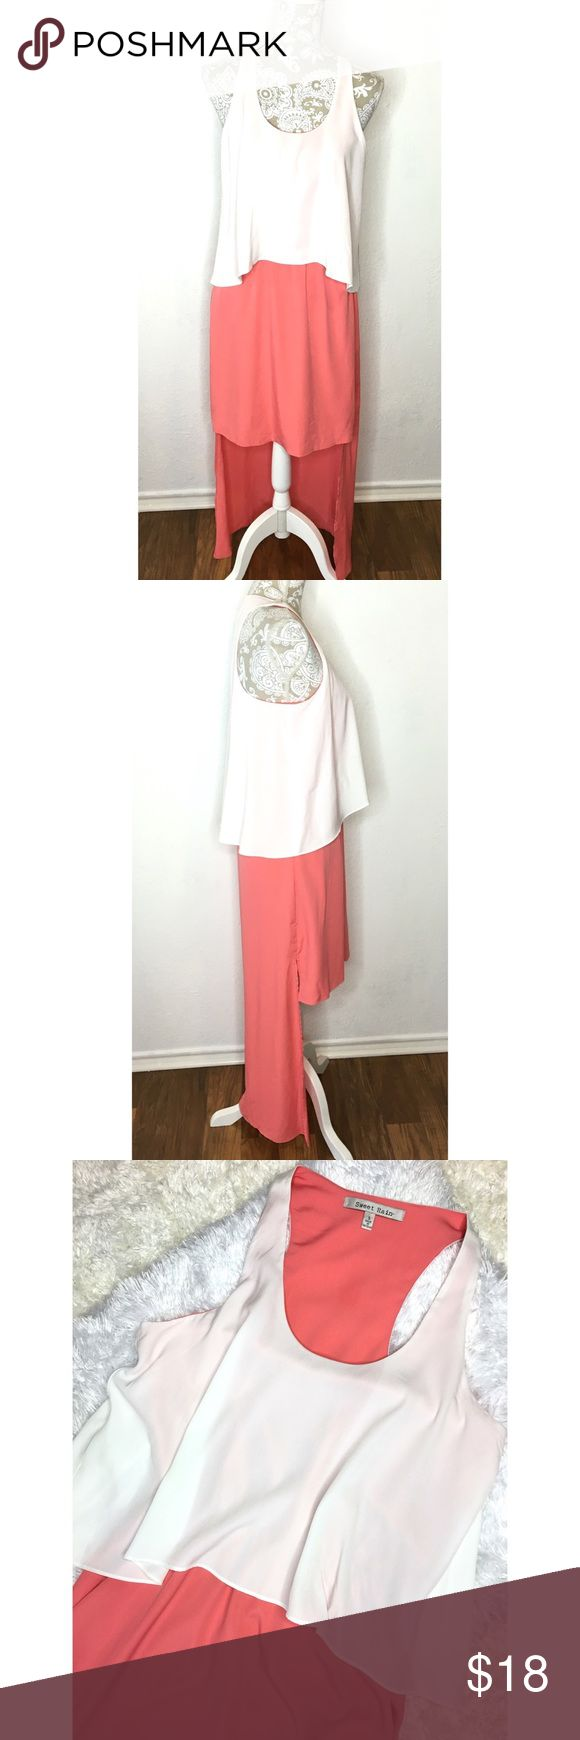 Sweet Rain coral & white high low sleeves dress S Sweet Rain coral & white high low sleeveless dress w/ crop trapeze layer. Size SMALL. 100% polyester. EUC. Smoke free home. Cute spring and summer dress just add wedges or flip flops. ❌No trades❌ Sweet Rain Dresses High Low